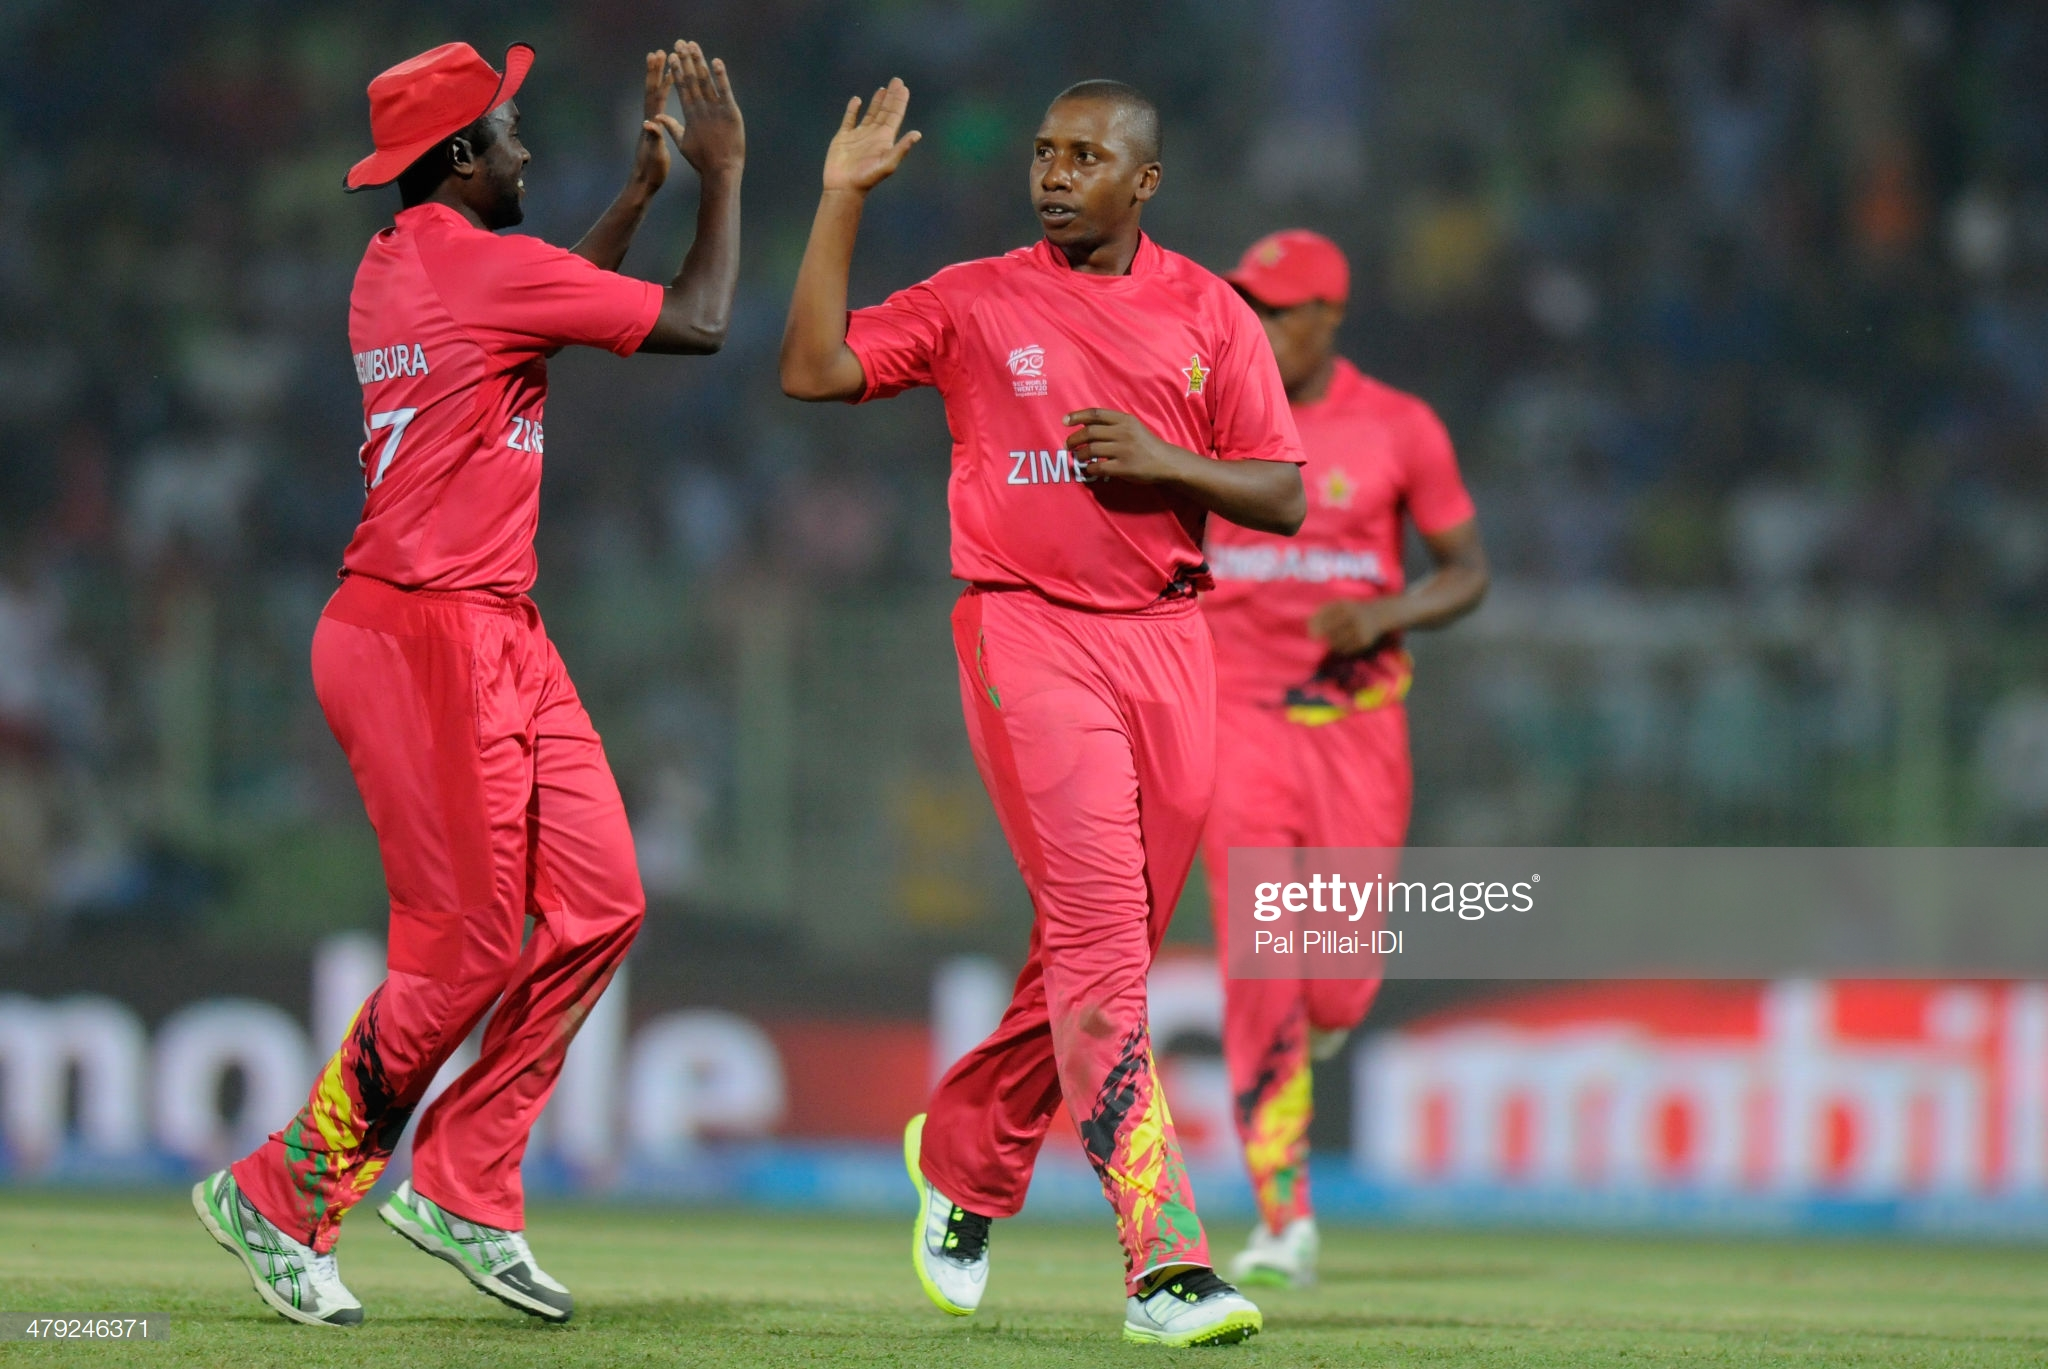 SYLHET, BANGLADESH - MARCH 17: Tinashe Panyangara of Zimbabwe celebrates the wicket of Andrew Poynter of Ireland during the ICC T20 World Cup match between Ireland and Zimbabwe played at Sylhet International Cricket Stadium on March 17, 2014 in Sylhet, Bangladesh. (Photo by Pal Pillai-IDI/IDI via Getty Images)